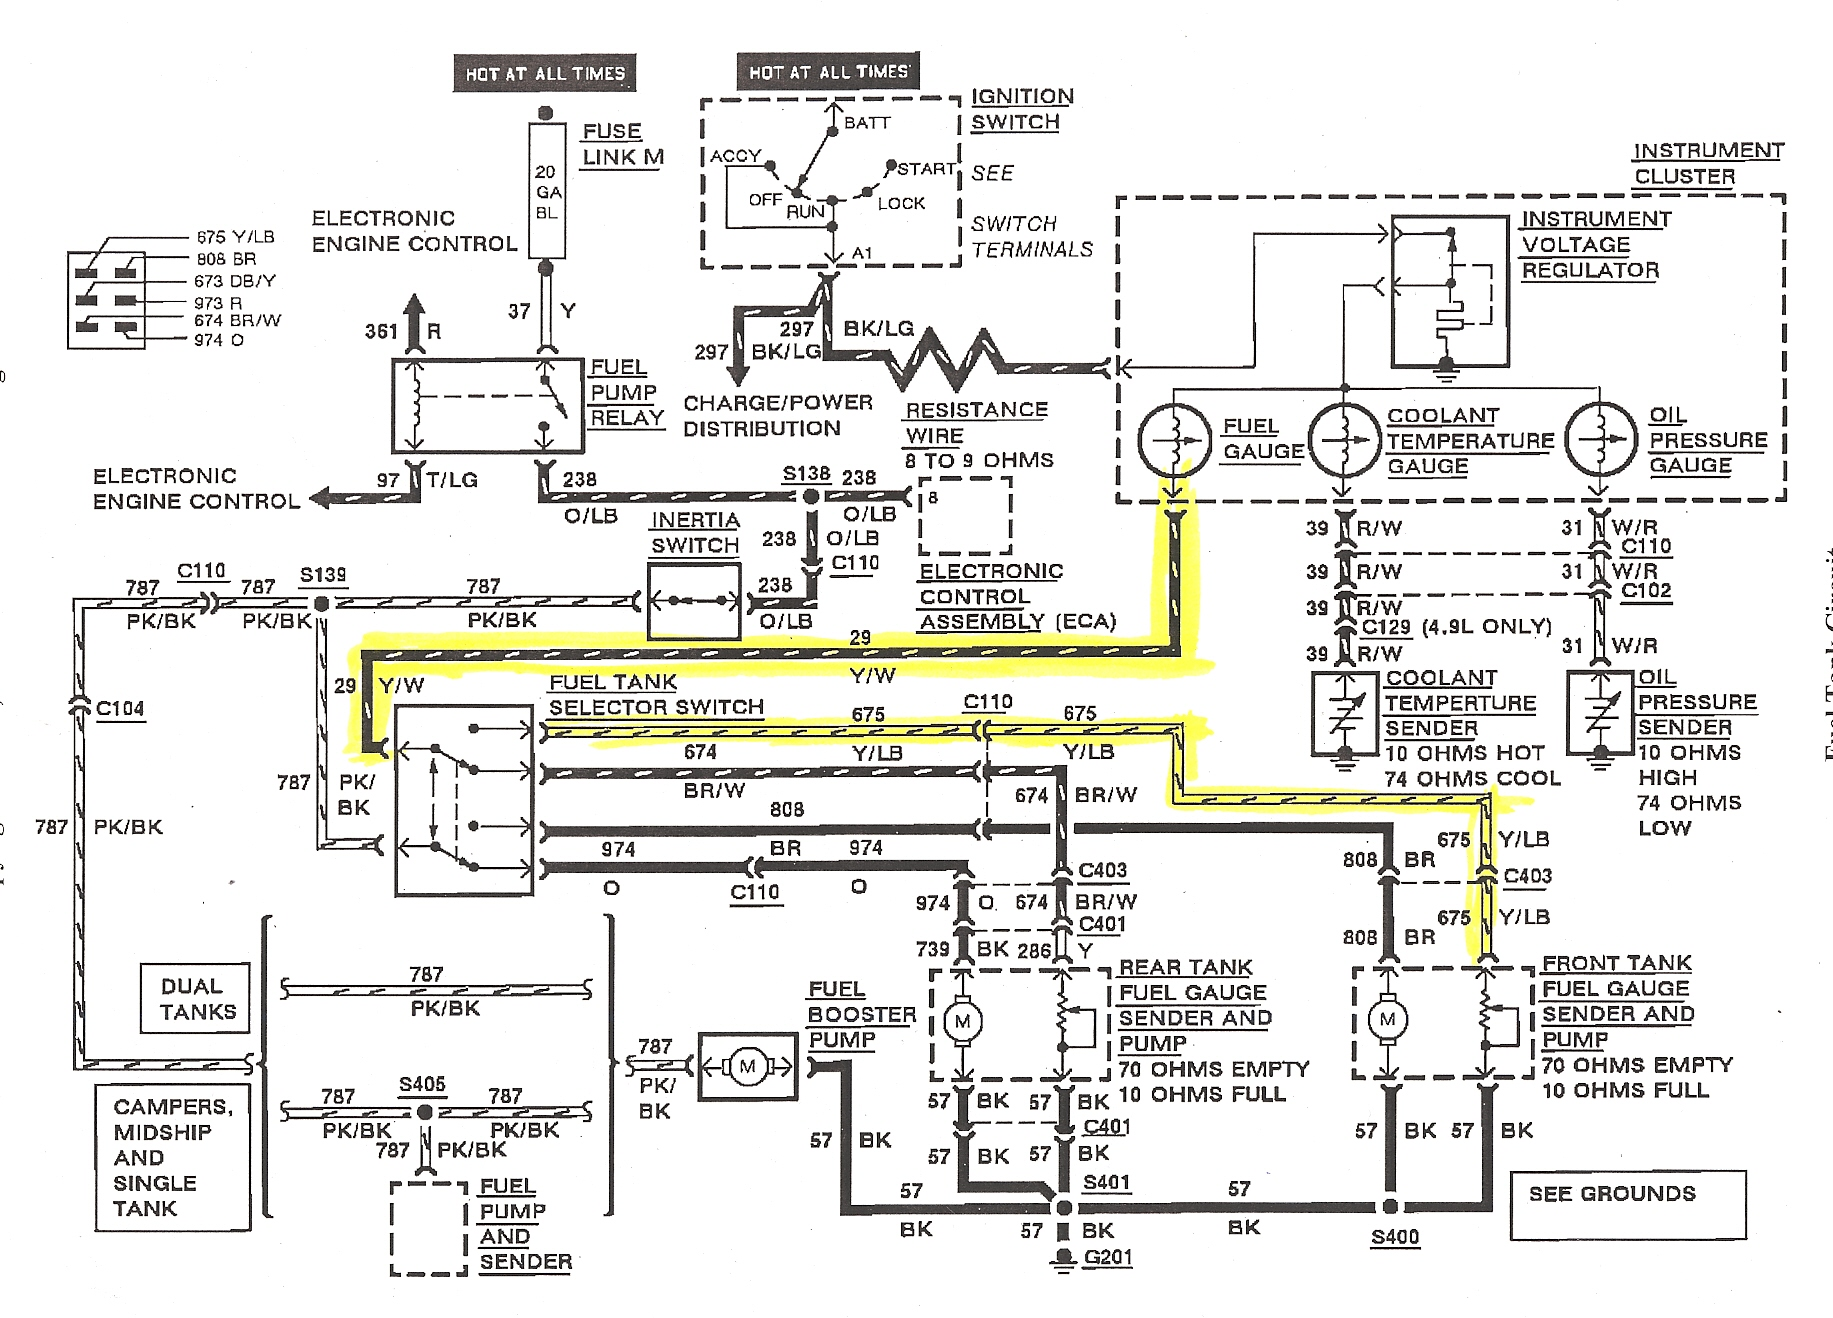 Sending Unit Wiring Diagram On Oil Pressure Switch